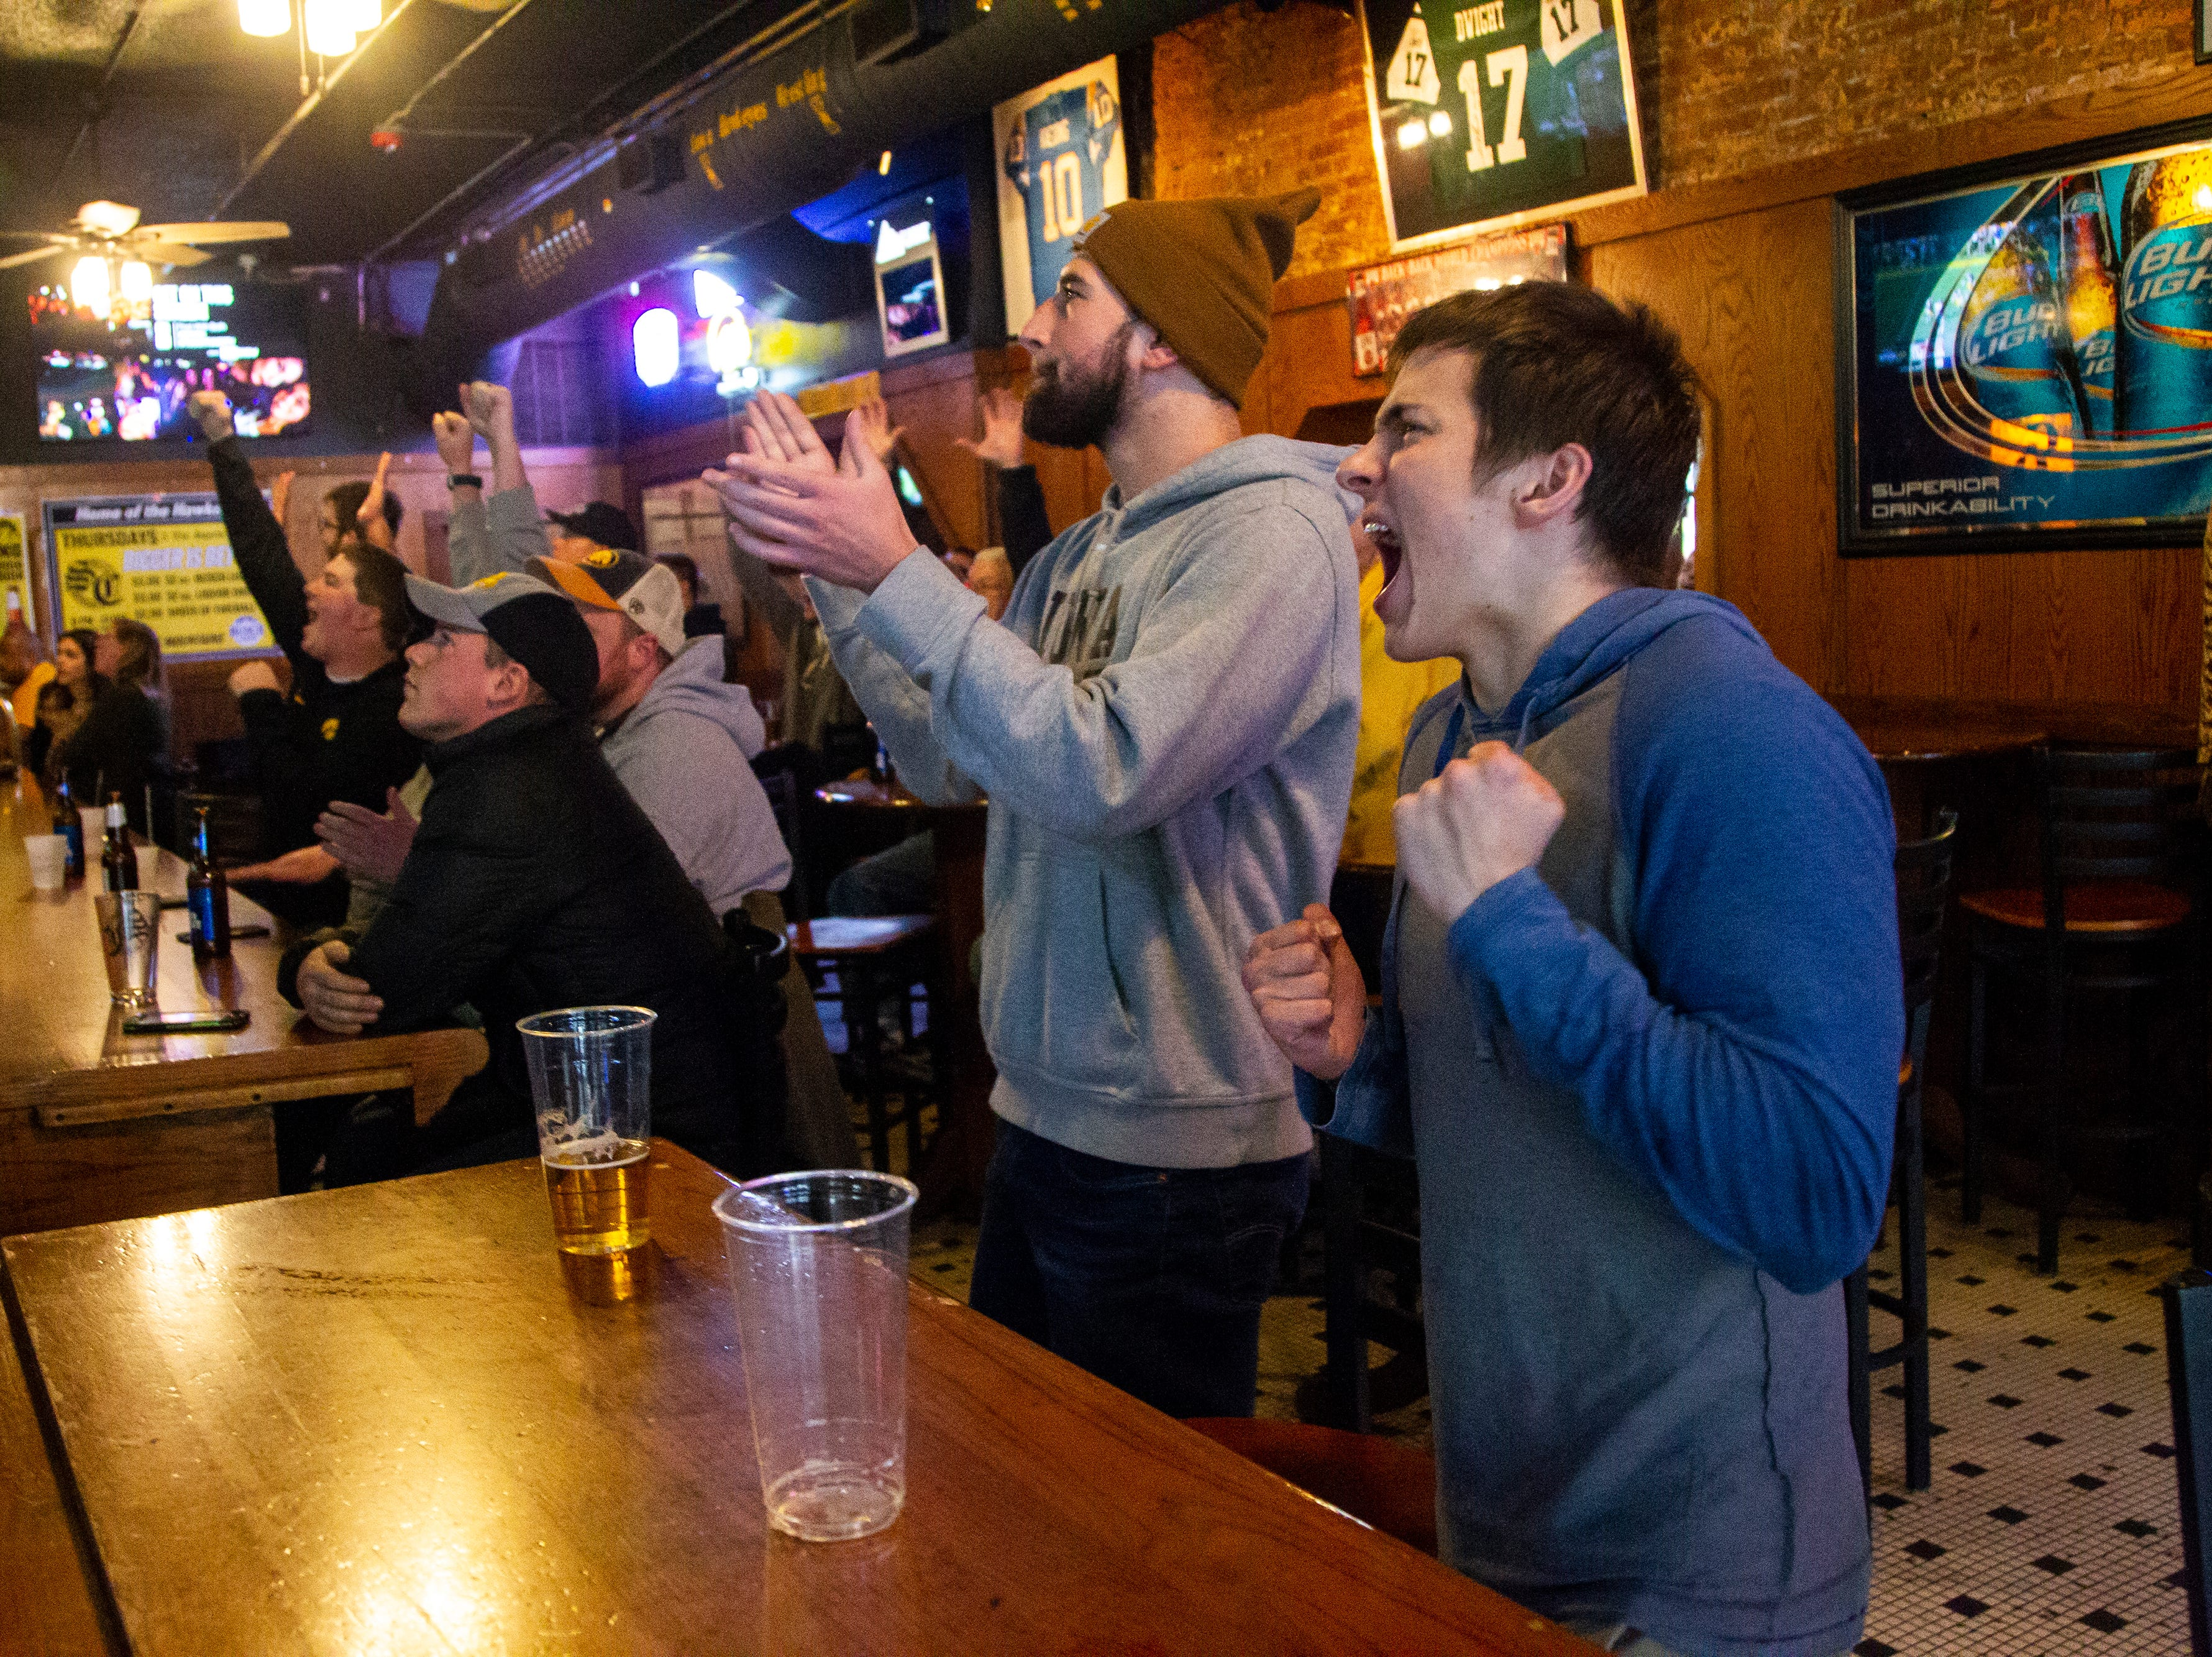 Iowa fans Casey Dauksas, right, and Nolan Stevens react while watching the Iowa vs. Mississippi State Outback Bowl football game on Tuesday, Jan. 1, 2019, at Sports Column on S. Dubuque Street in Iowa City.